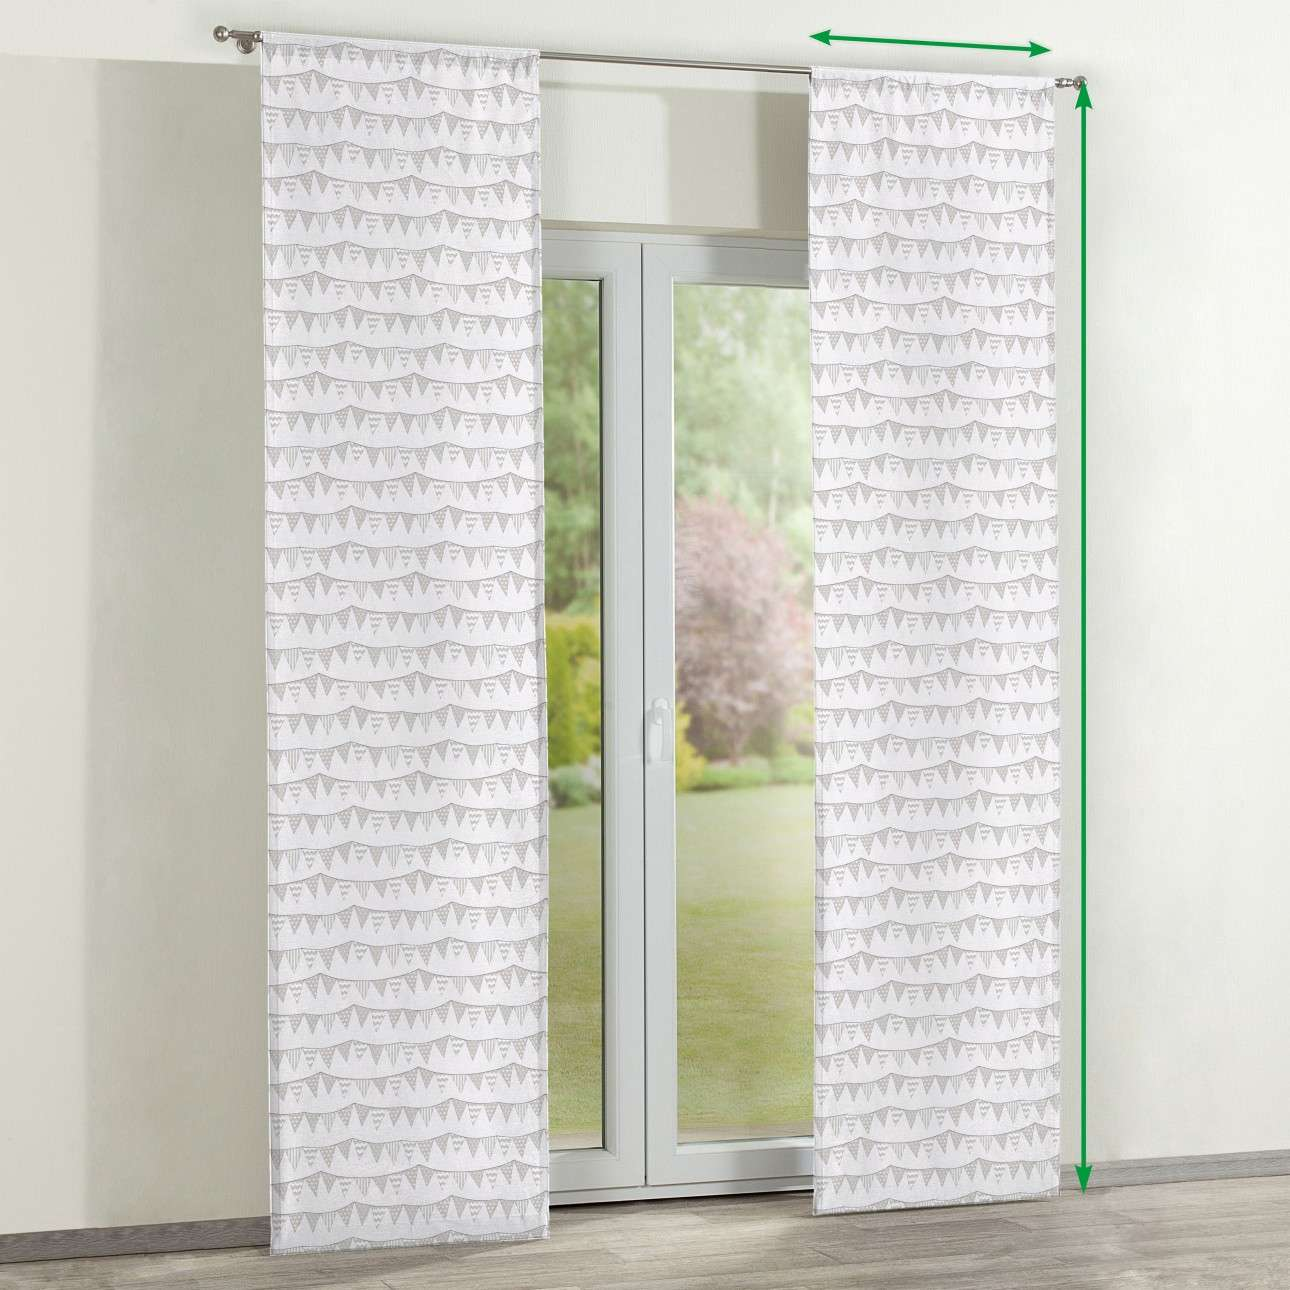 Slot panel curtains – Set of 2 in collection Marina, fabric: 140-65